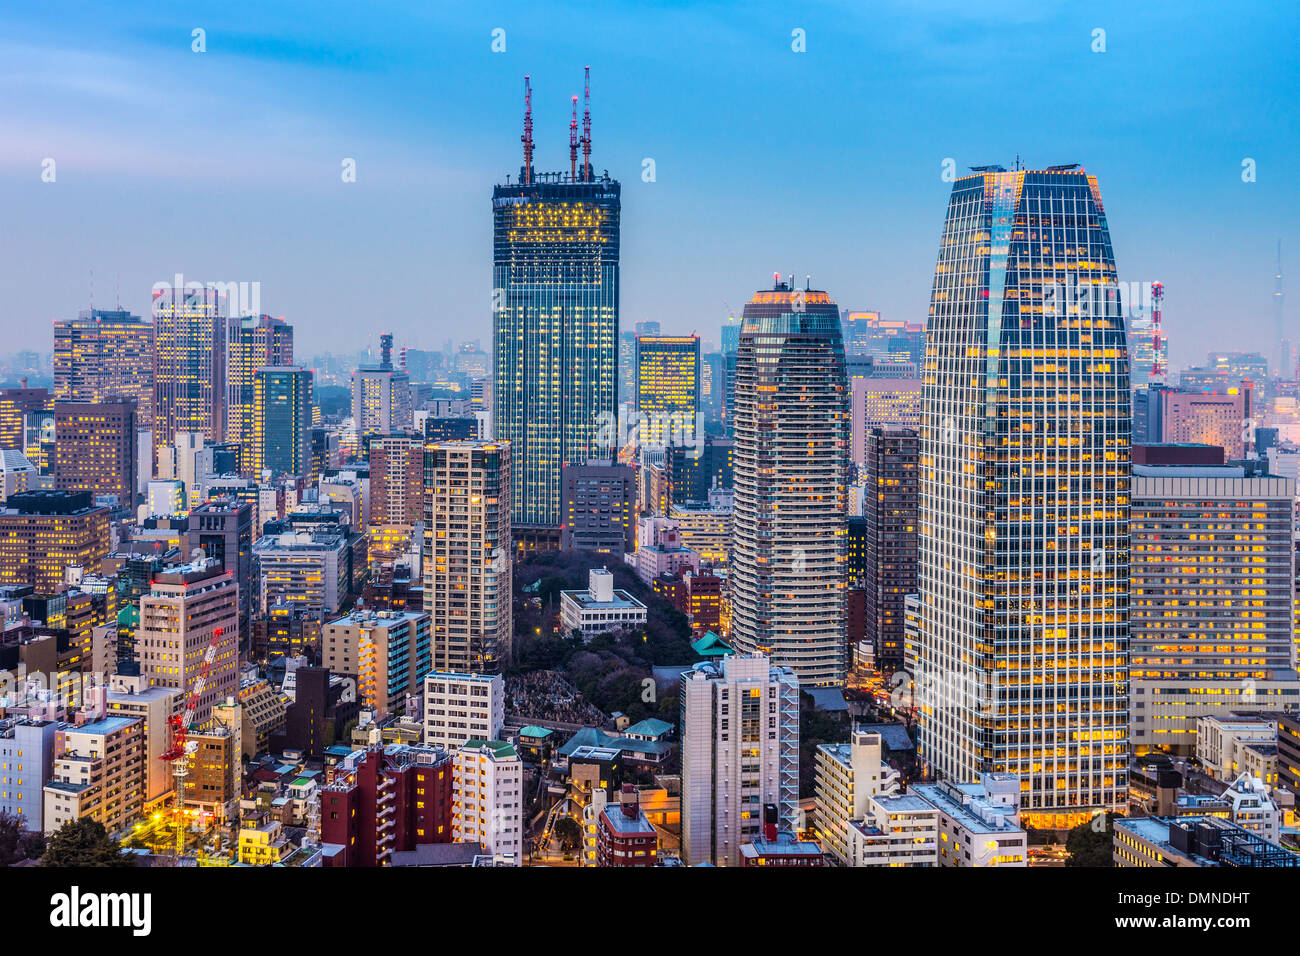 Tokyo, Japan cityscape and office buildings in Minato Ward. Stock Photo